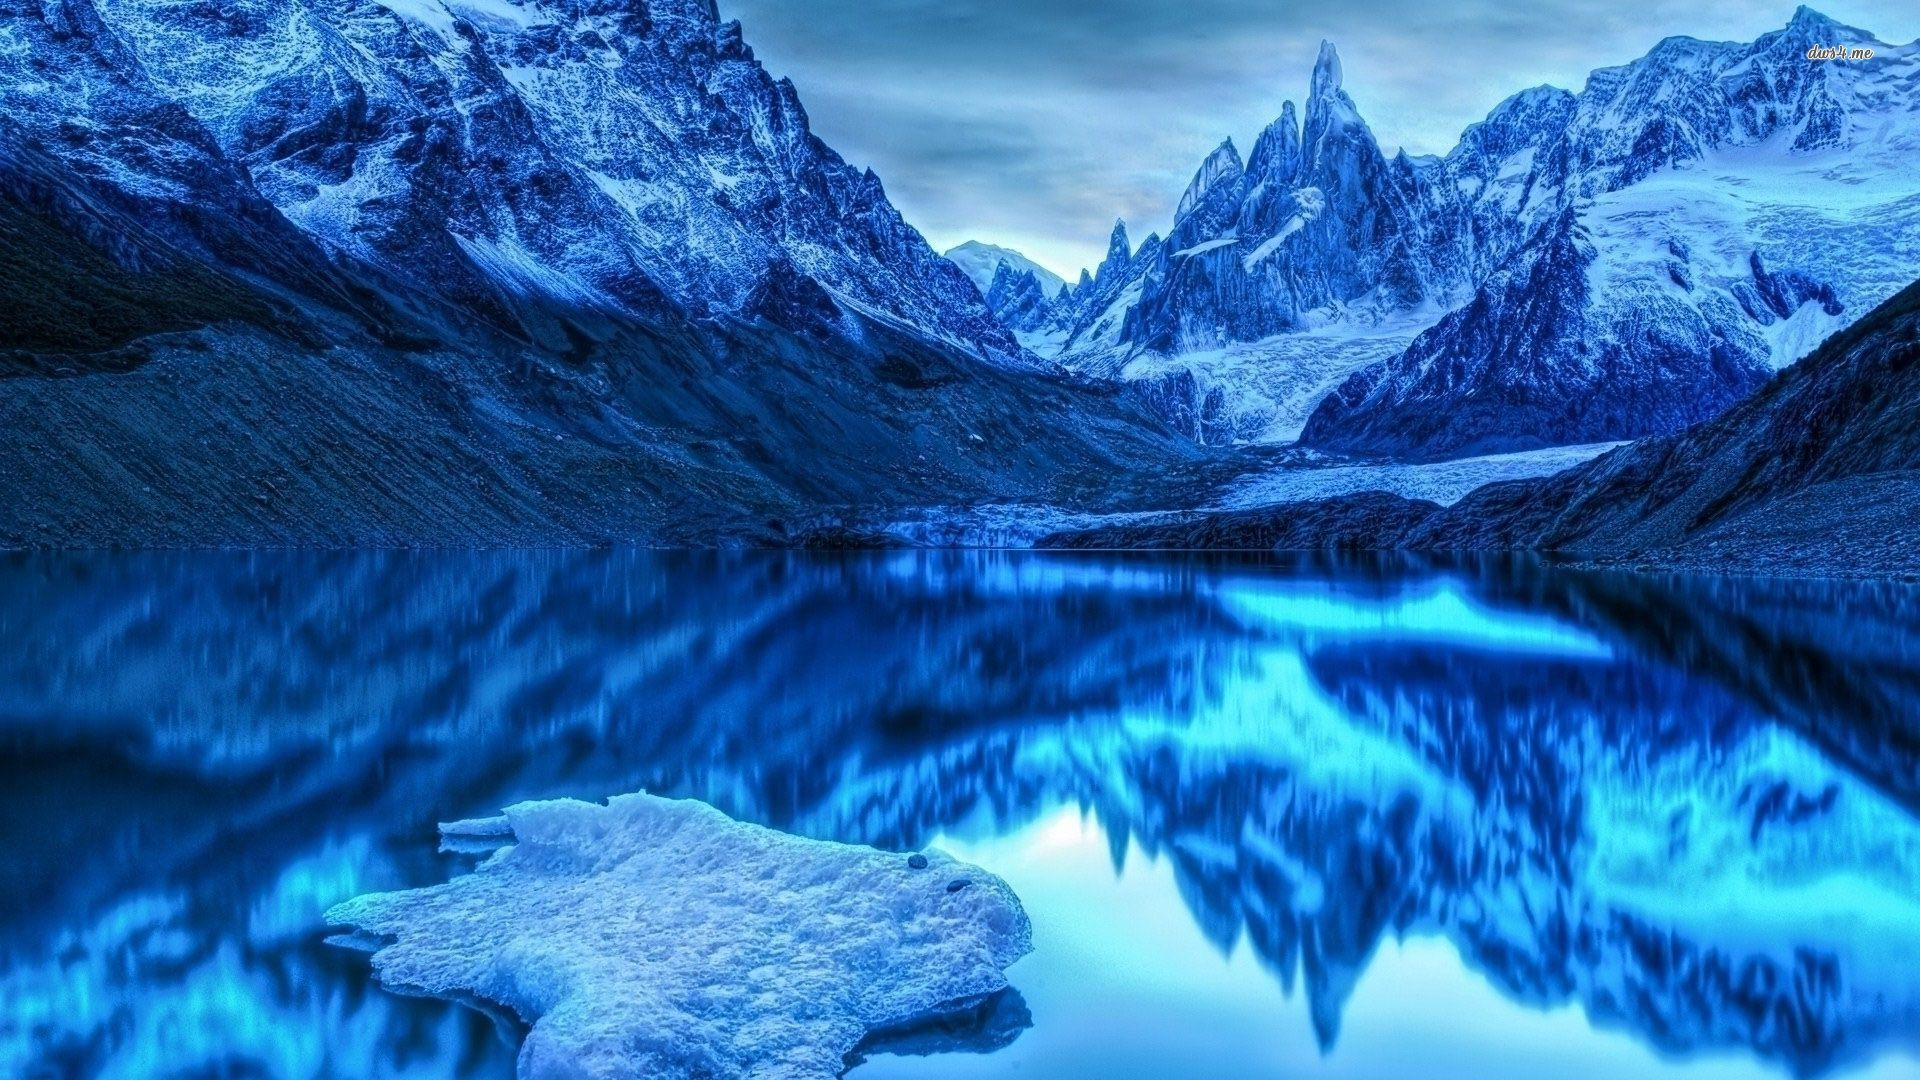 Blue Nature Wallpapers Top Free Blue Nature Backgrounds